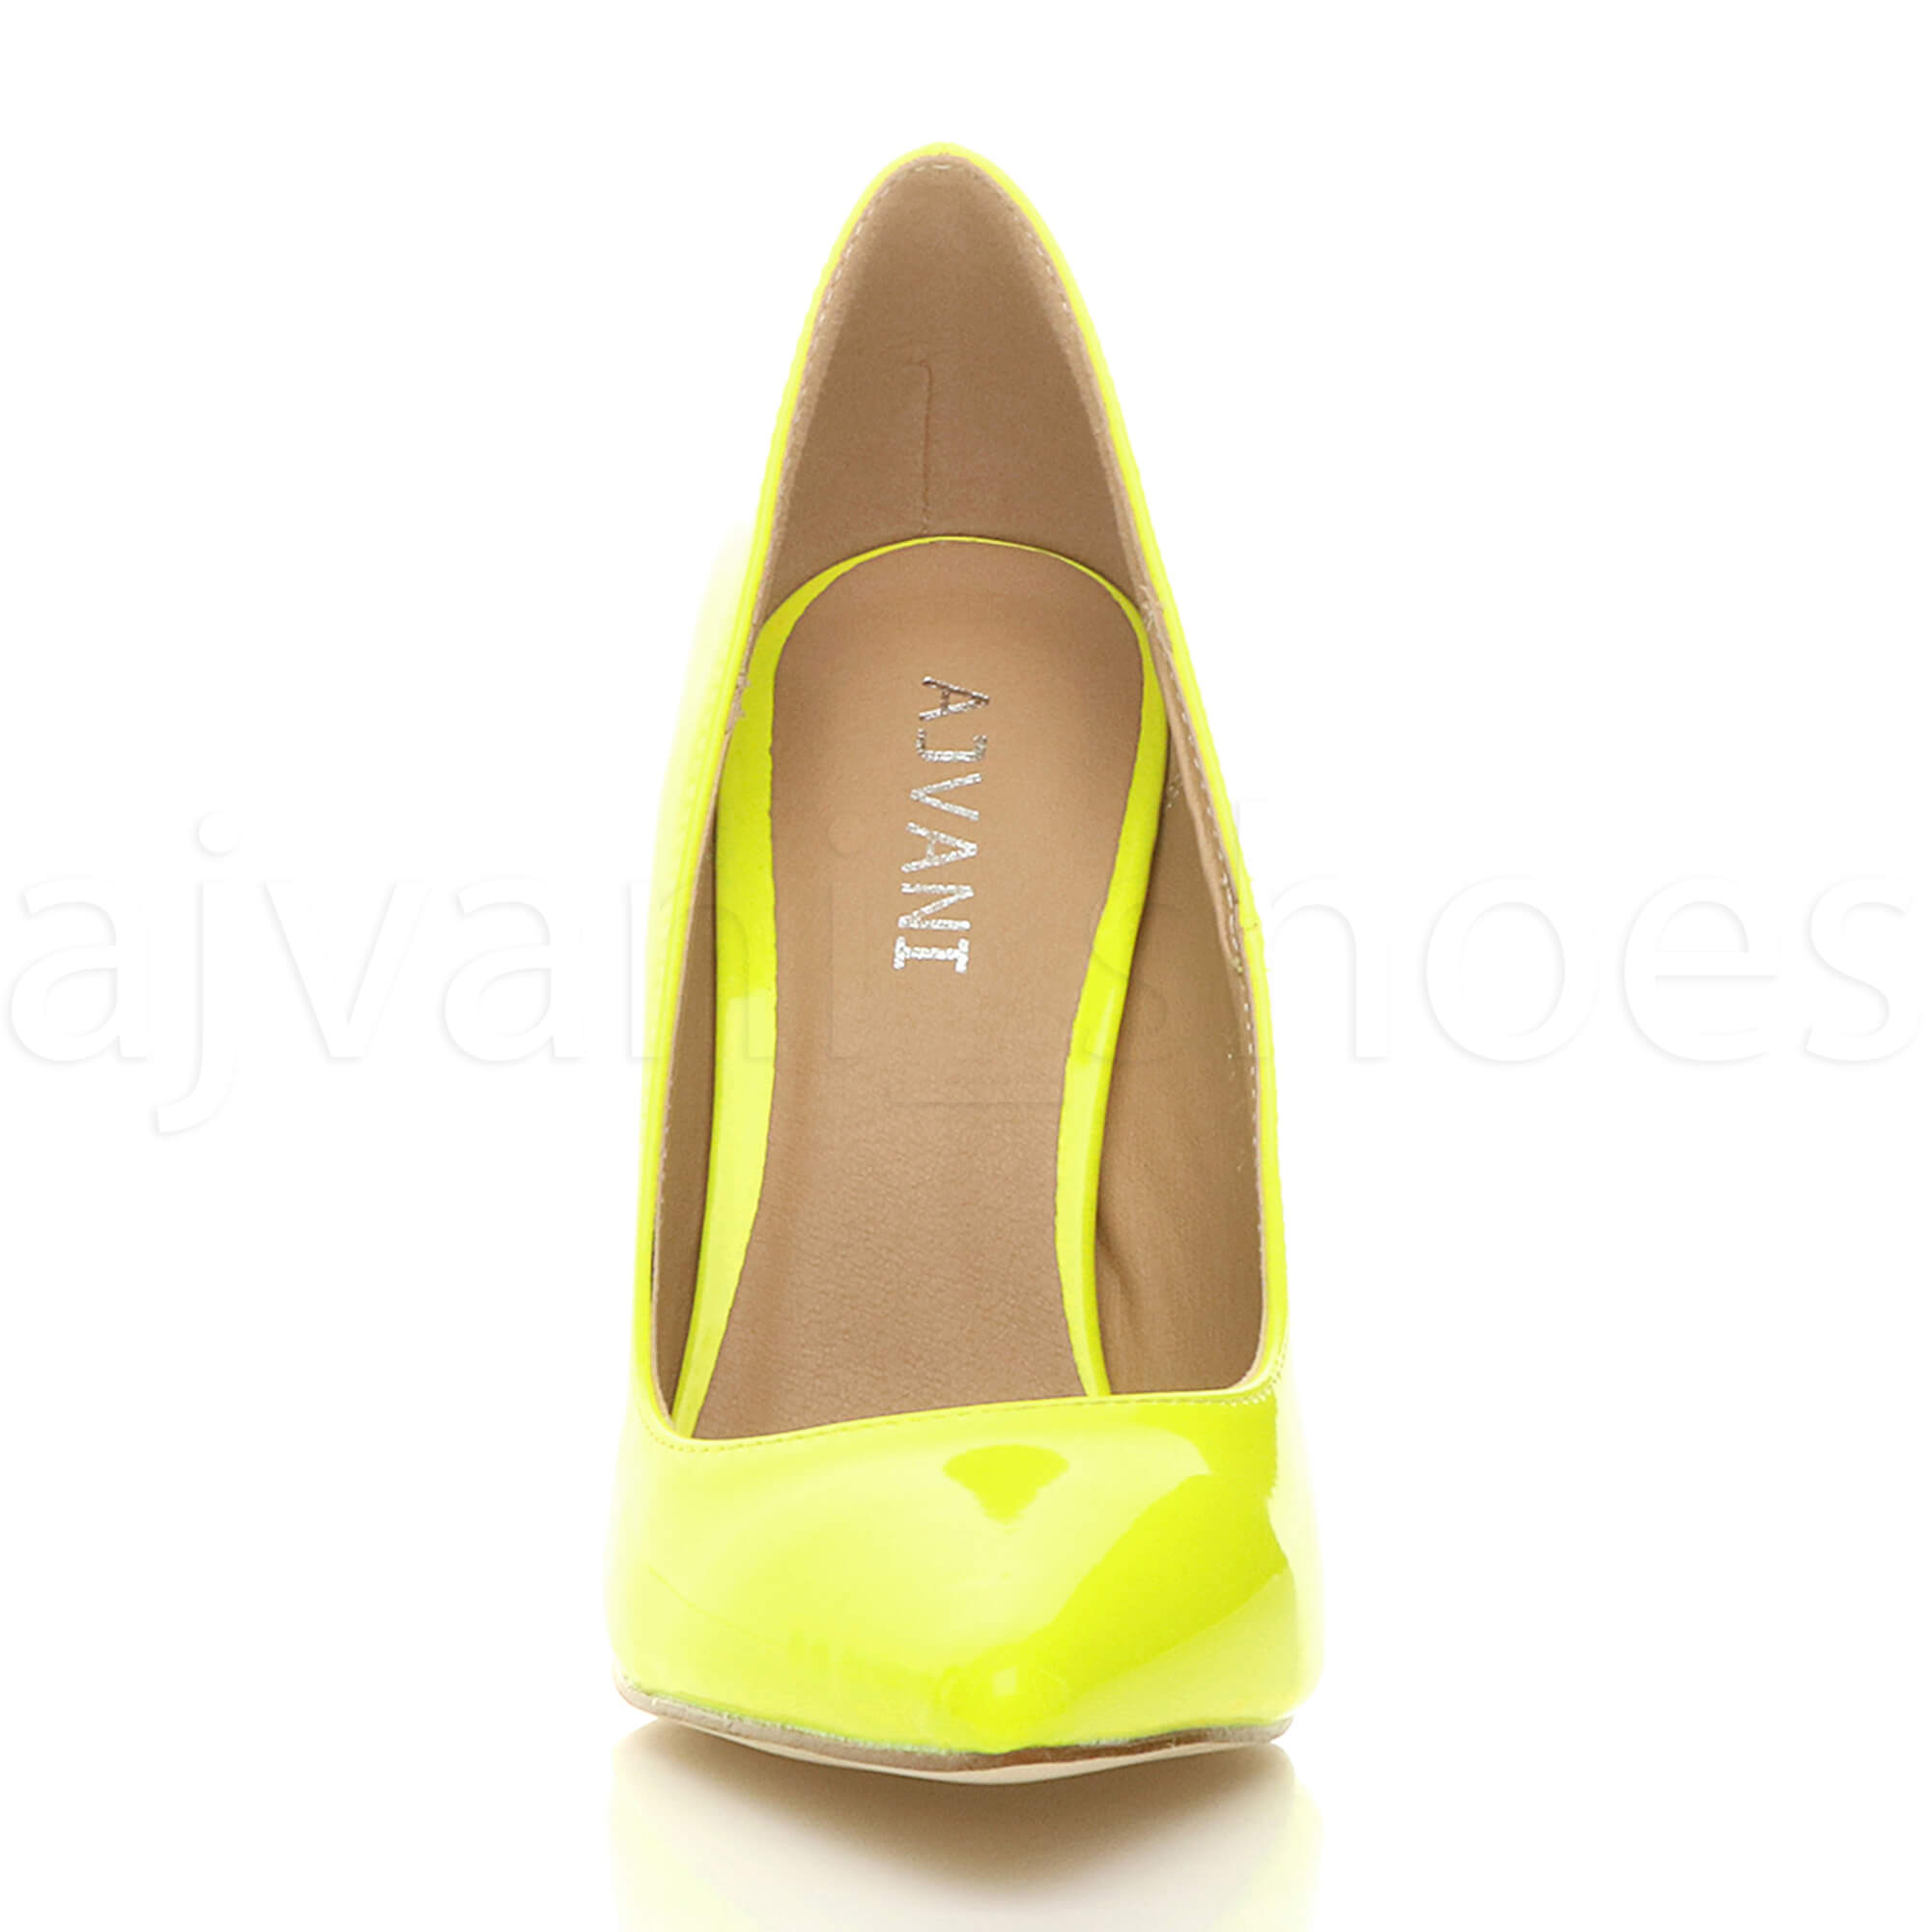 WOMENS-LADIES-HIGH-HEEL-POINTED-CONTRAST-COURT-SMART-PARTY-WORK-SHOES-PUMPS-SIZE thumbnail 117